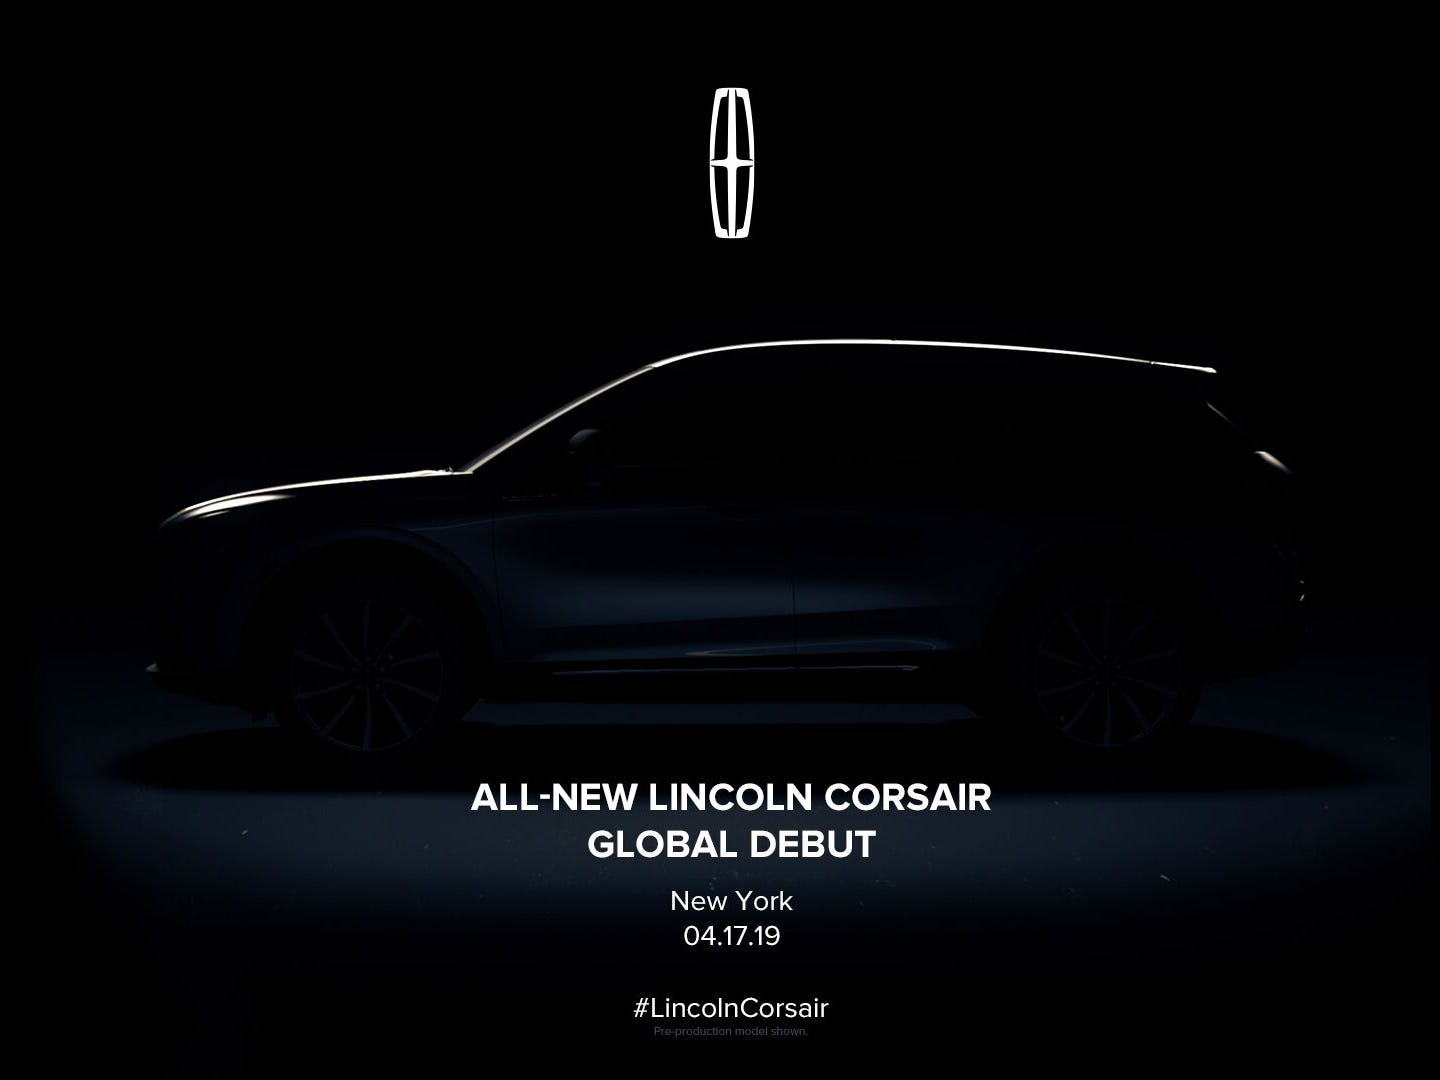 The Lincoln Motor Company will debut the all-new Lincoln Corsair on  April 17 at the 2019 New York International Auto Show.